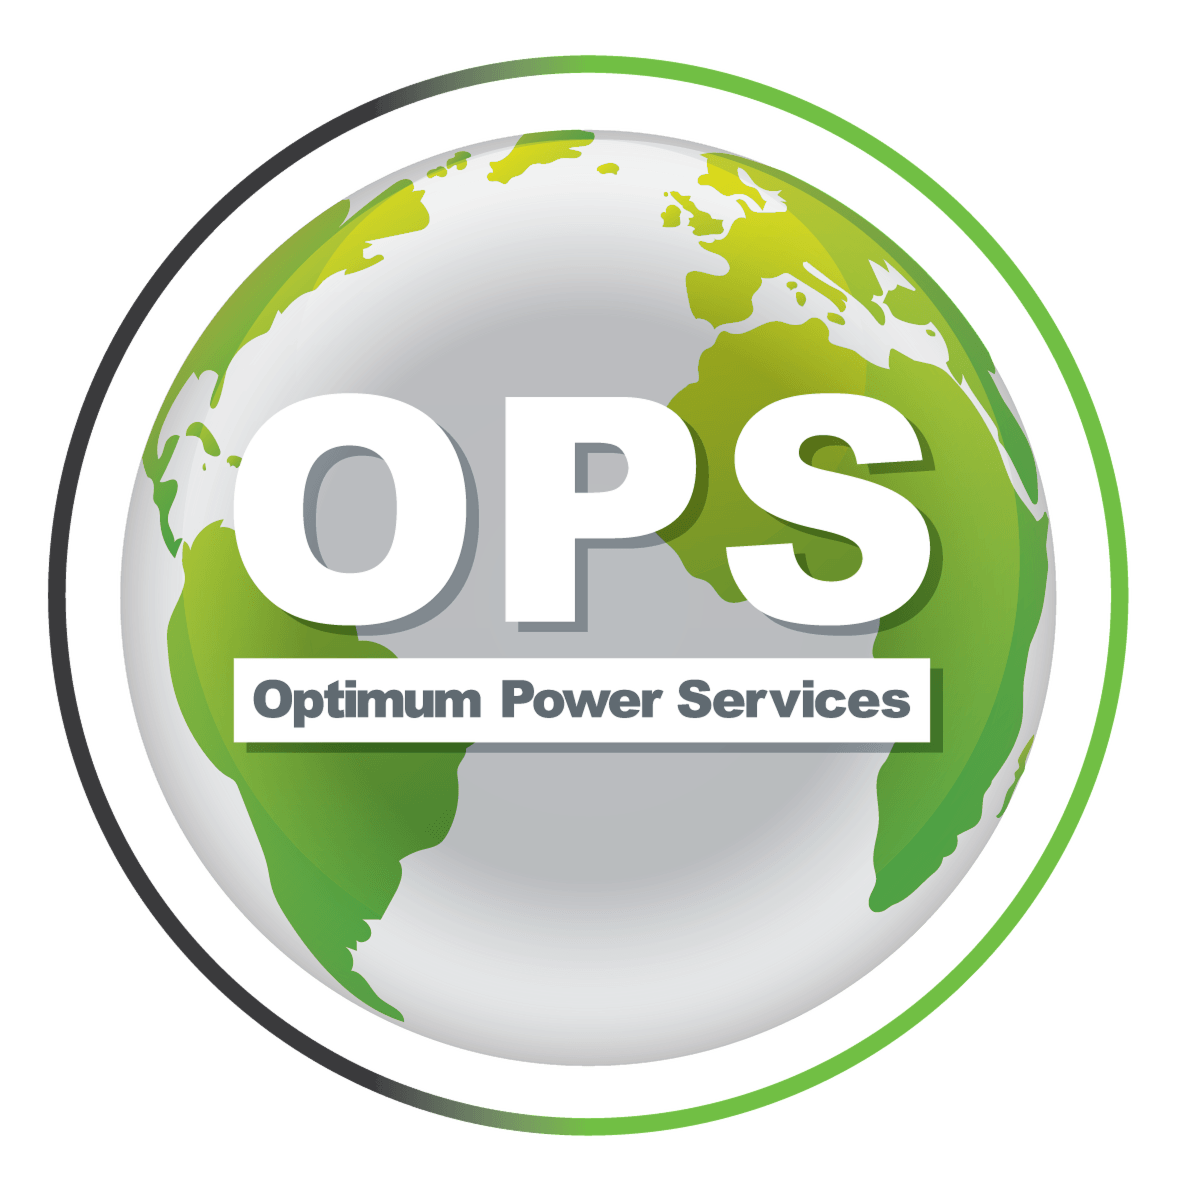 Optimum Power Services